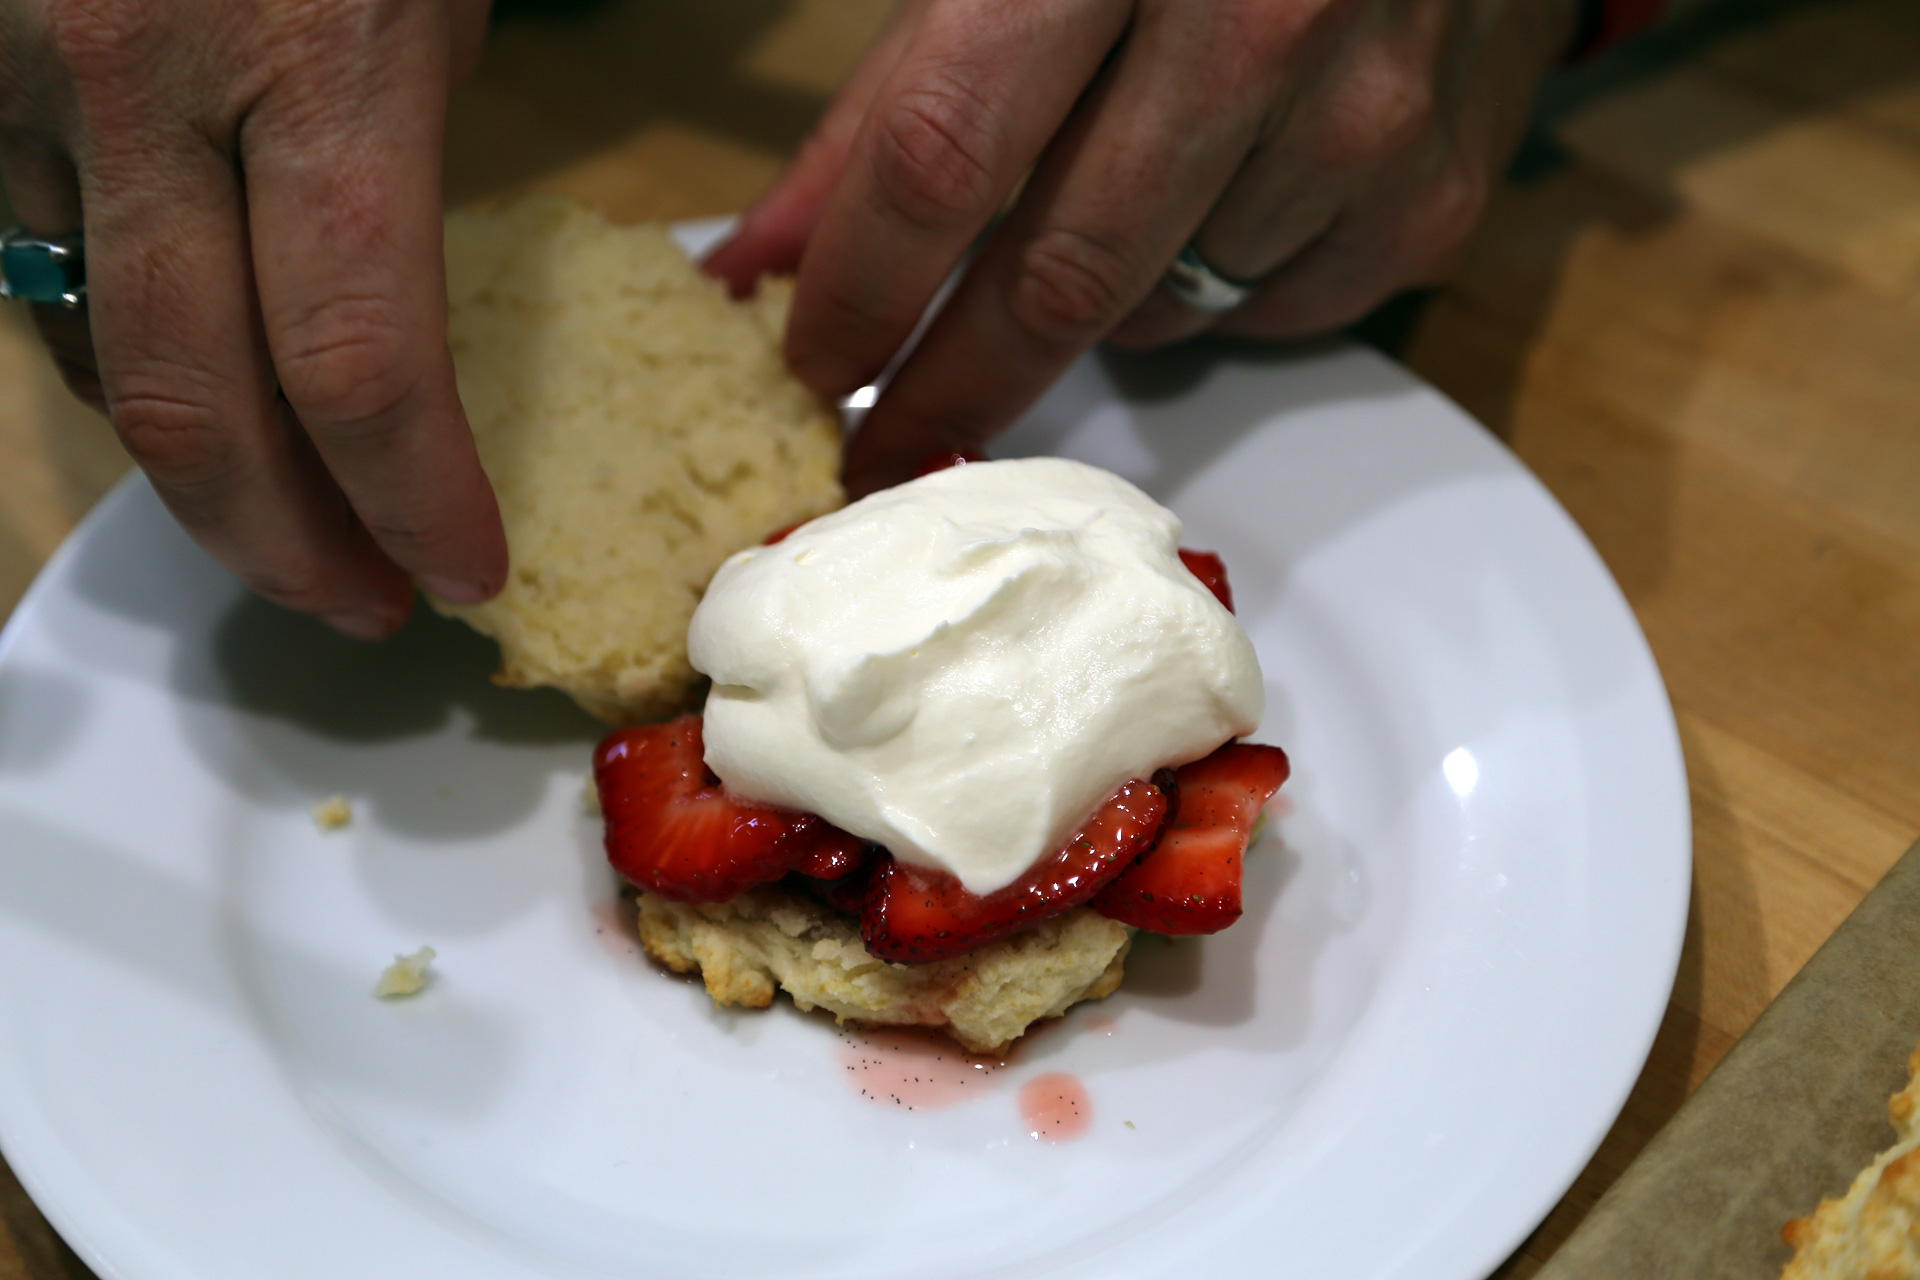 Top with a heaping spoonful of strawberries with the juices, some whipped cream.